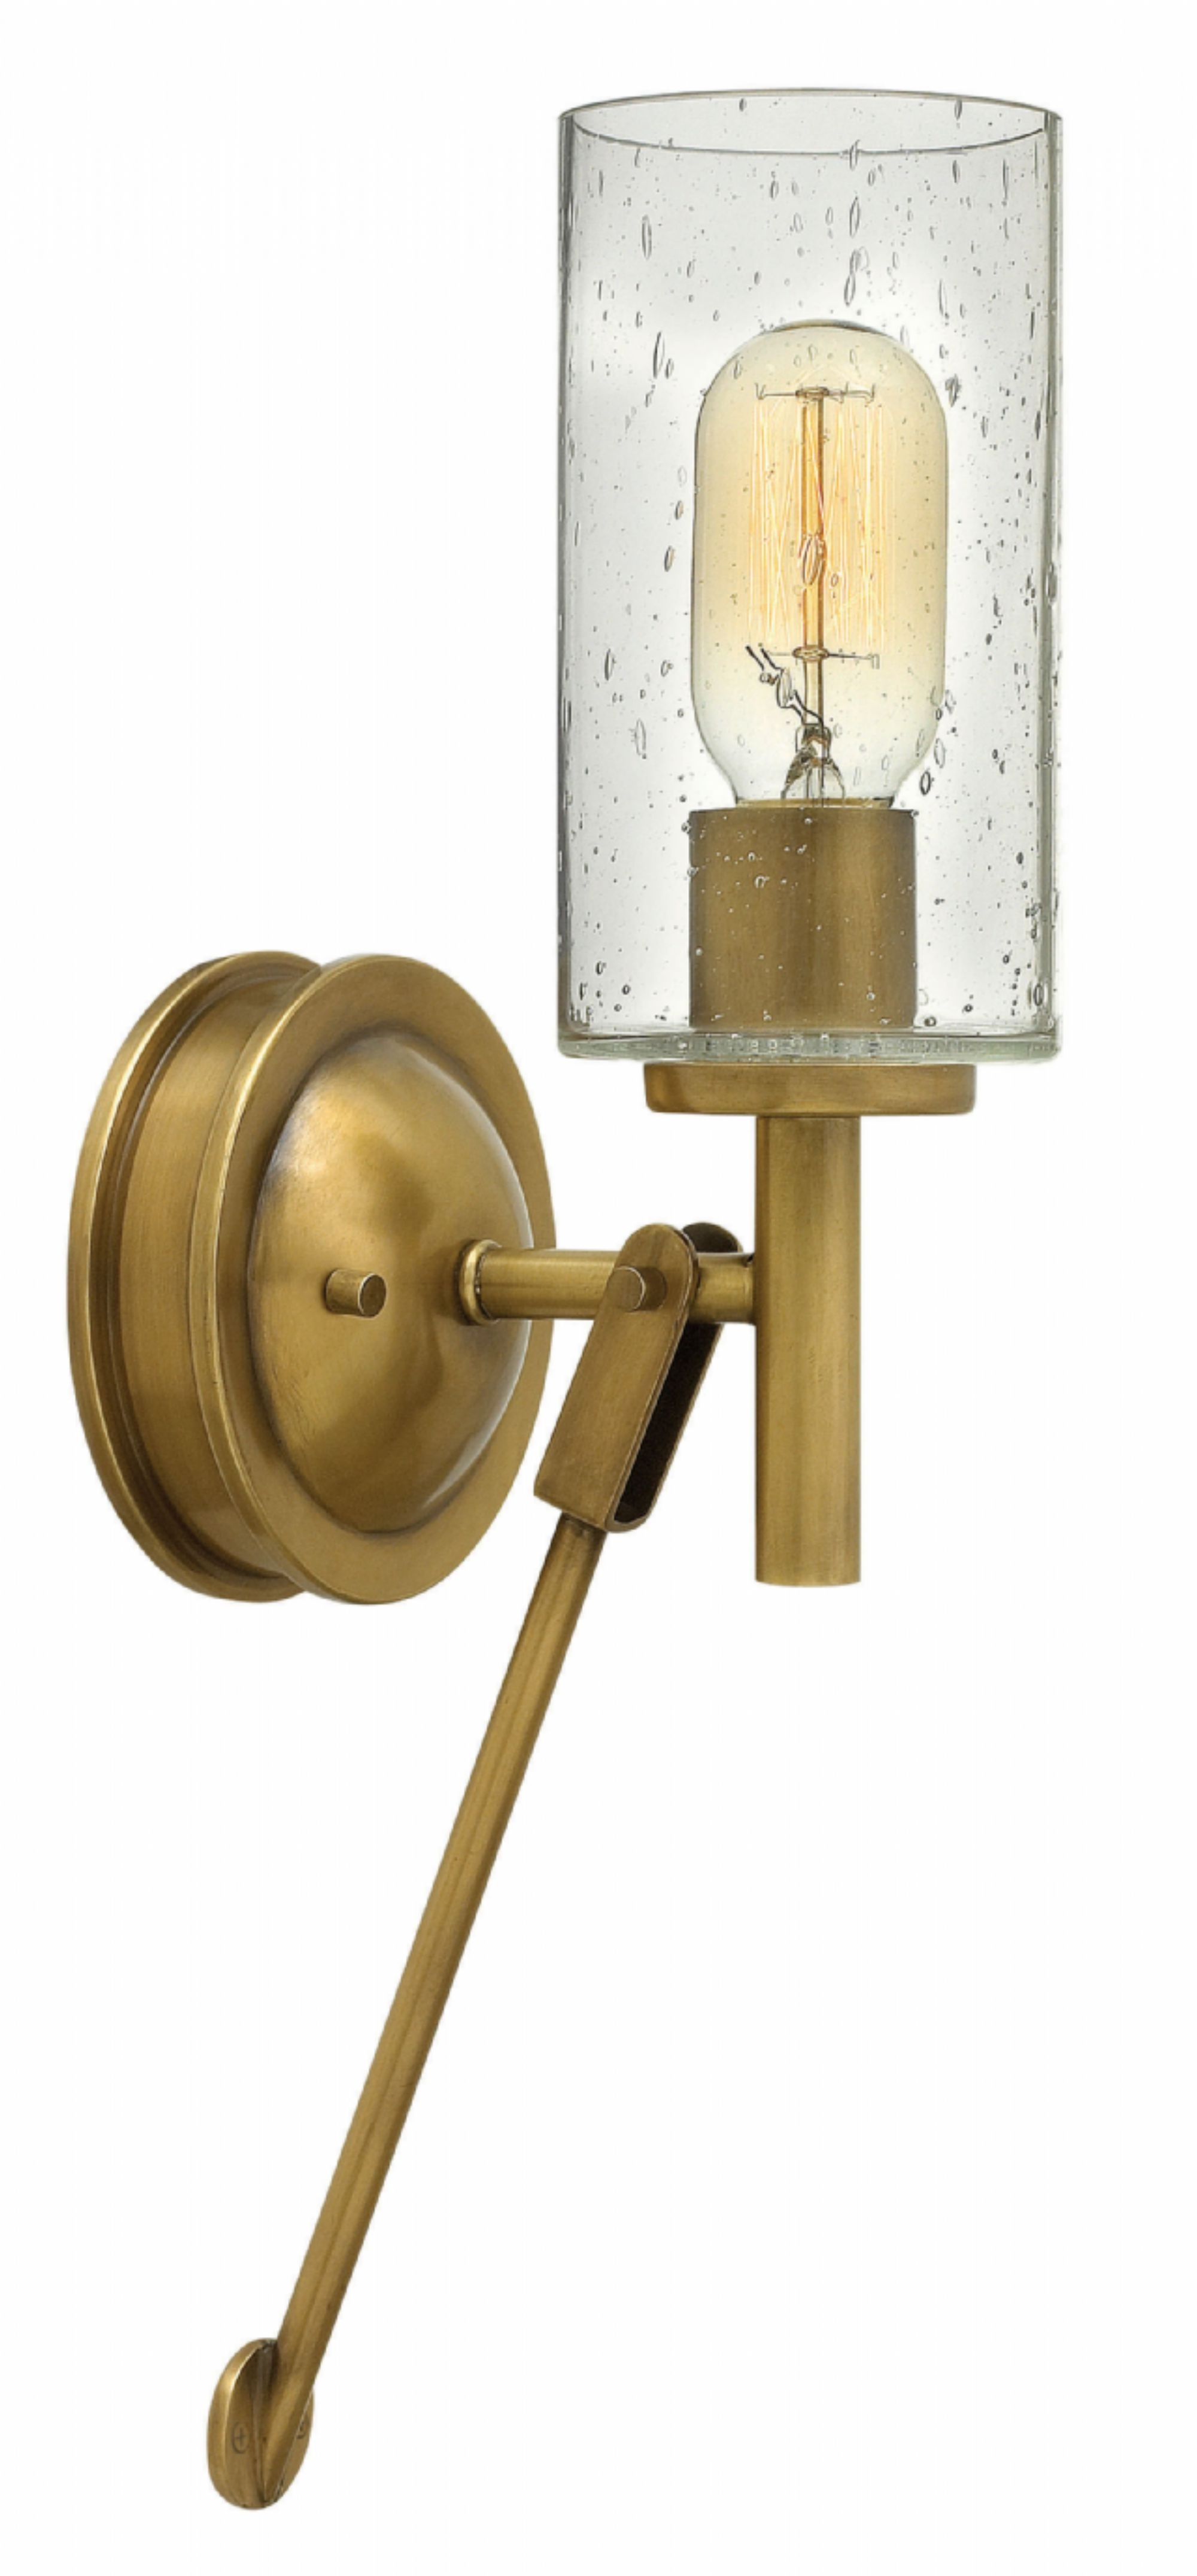 Most Recent Hinkley Lighting For Modern Garden In Lighting: Heritage Brass Collier Design Ideas With Hinkley Sconces (View 15 of 20)